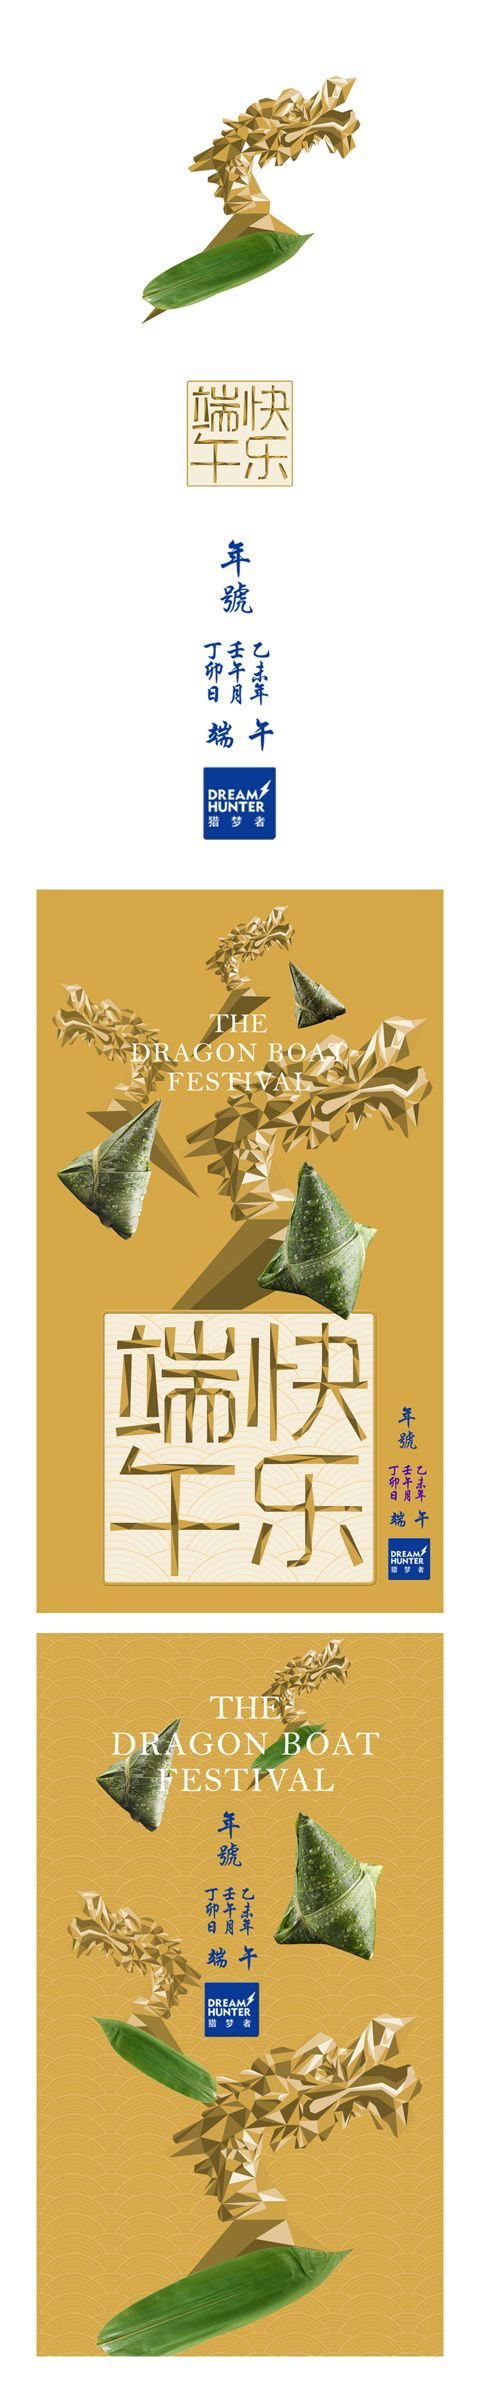 THE DRAGON BOAT FESTIVAL-2015 COMPANY BRAND on Behance